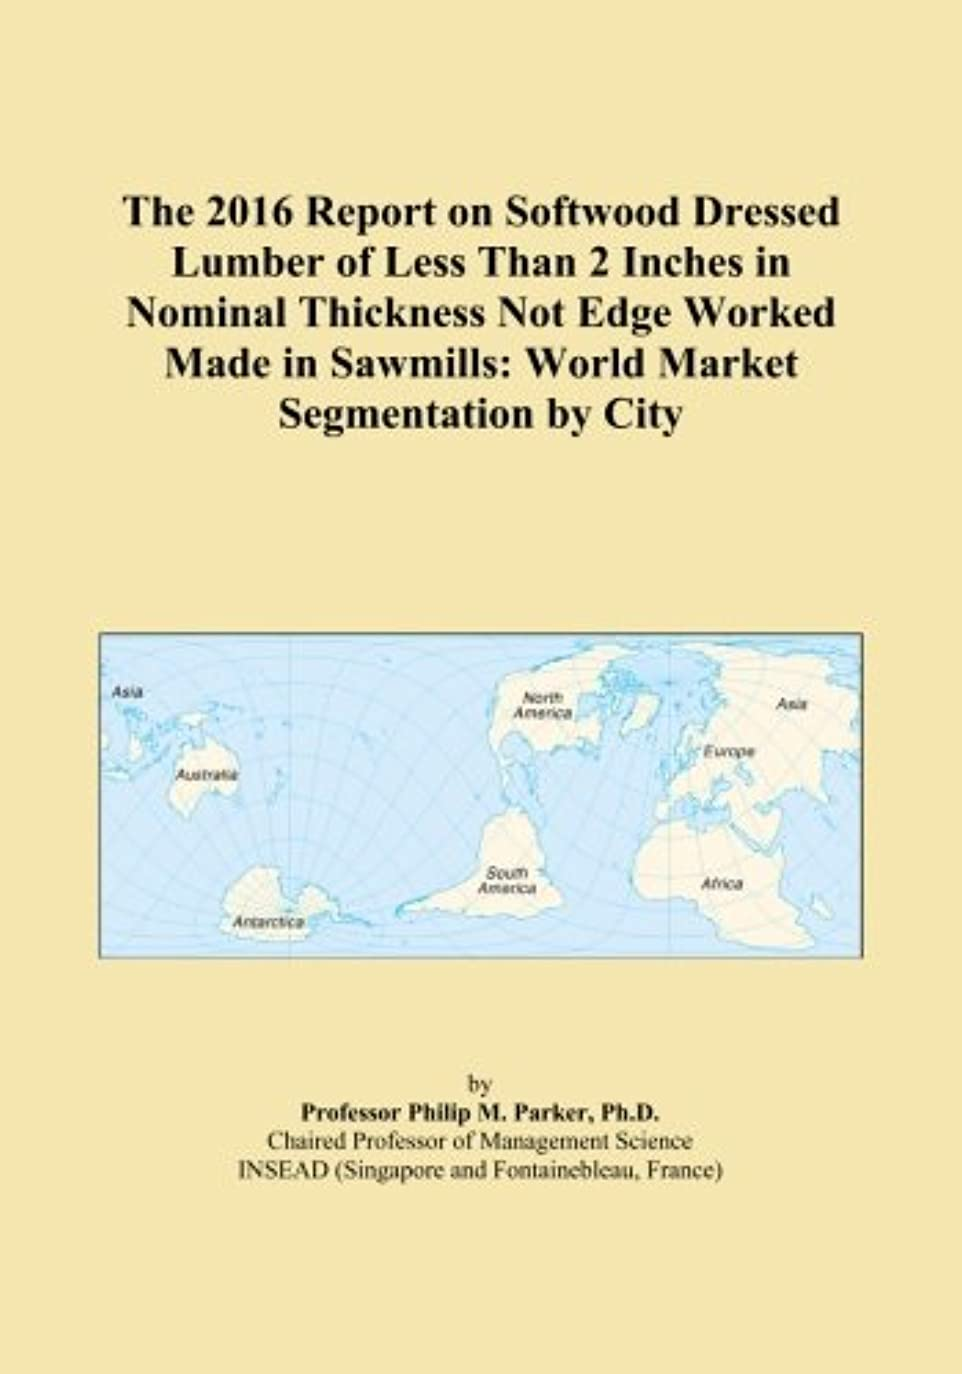 The 2016 Report on Softwood Dressed Lumber of Less Than 2 Inches in Nominal Thickness Not Edge Worked Made in Sawmills: World Market Segmentation by City